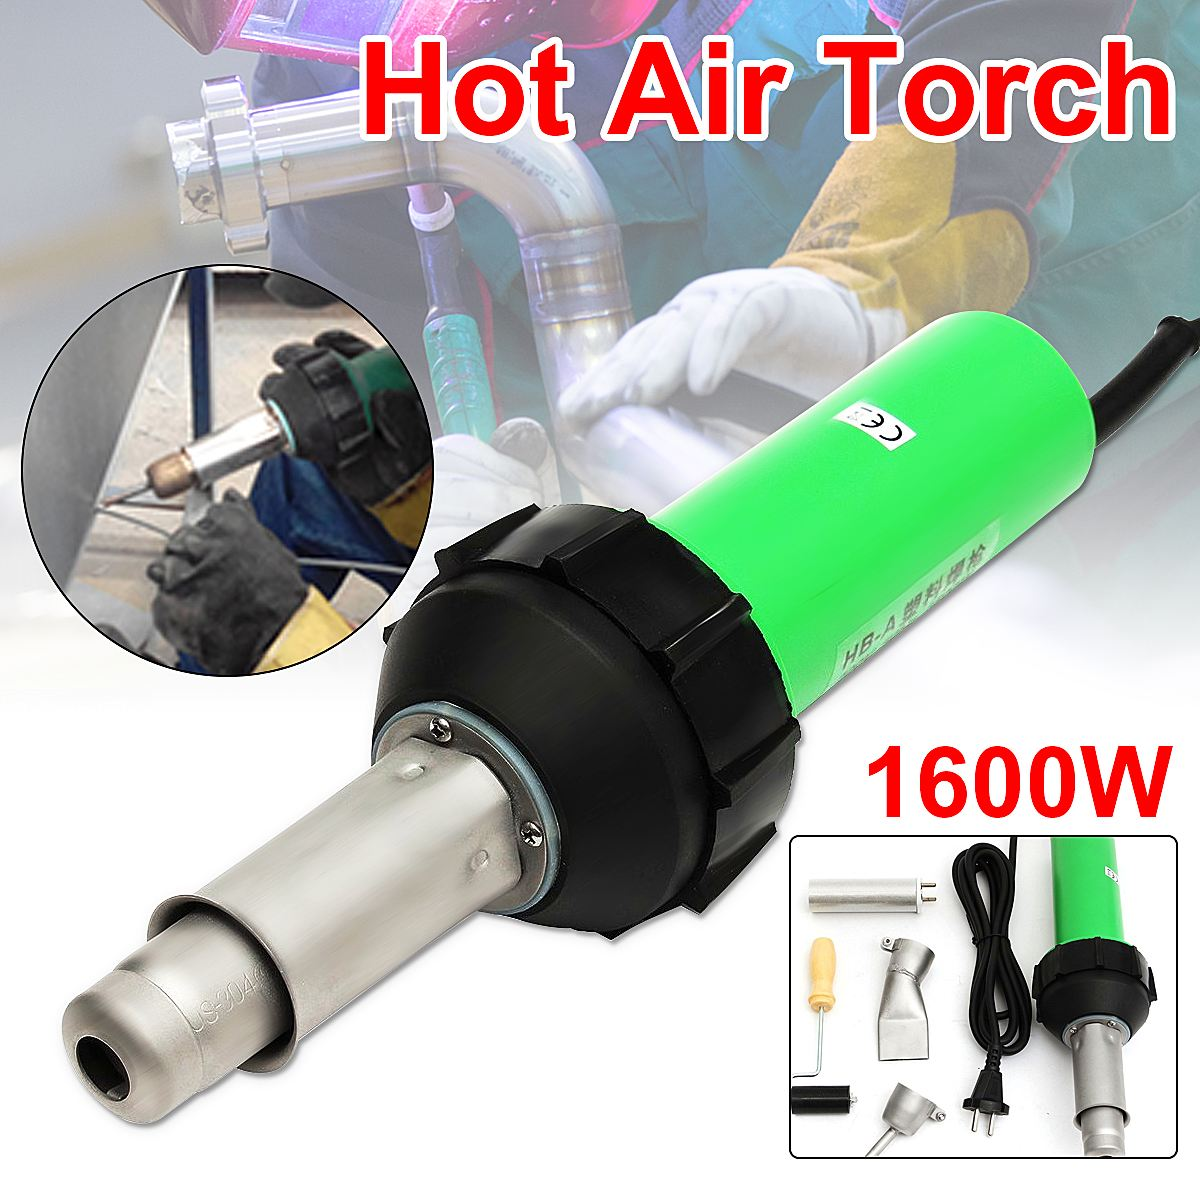 High Quality 220V 1600W 50Hz Electronic Heat Hot Air Torch Plastic Welding Welder Torch + Nozzle + Pressure Roller 3000Pa welder machine plasma cutter welder mask for welder machine